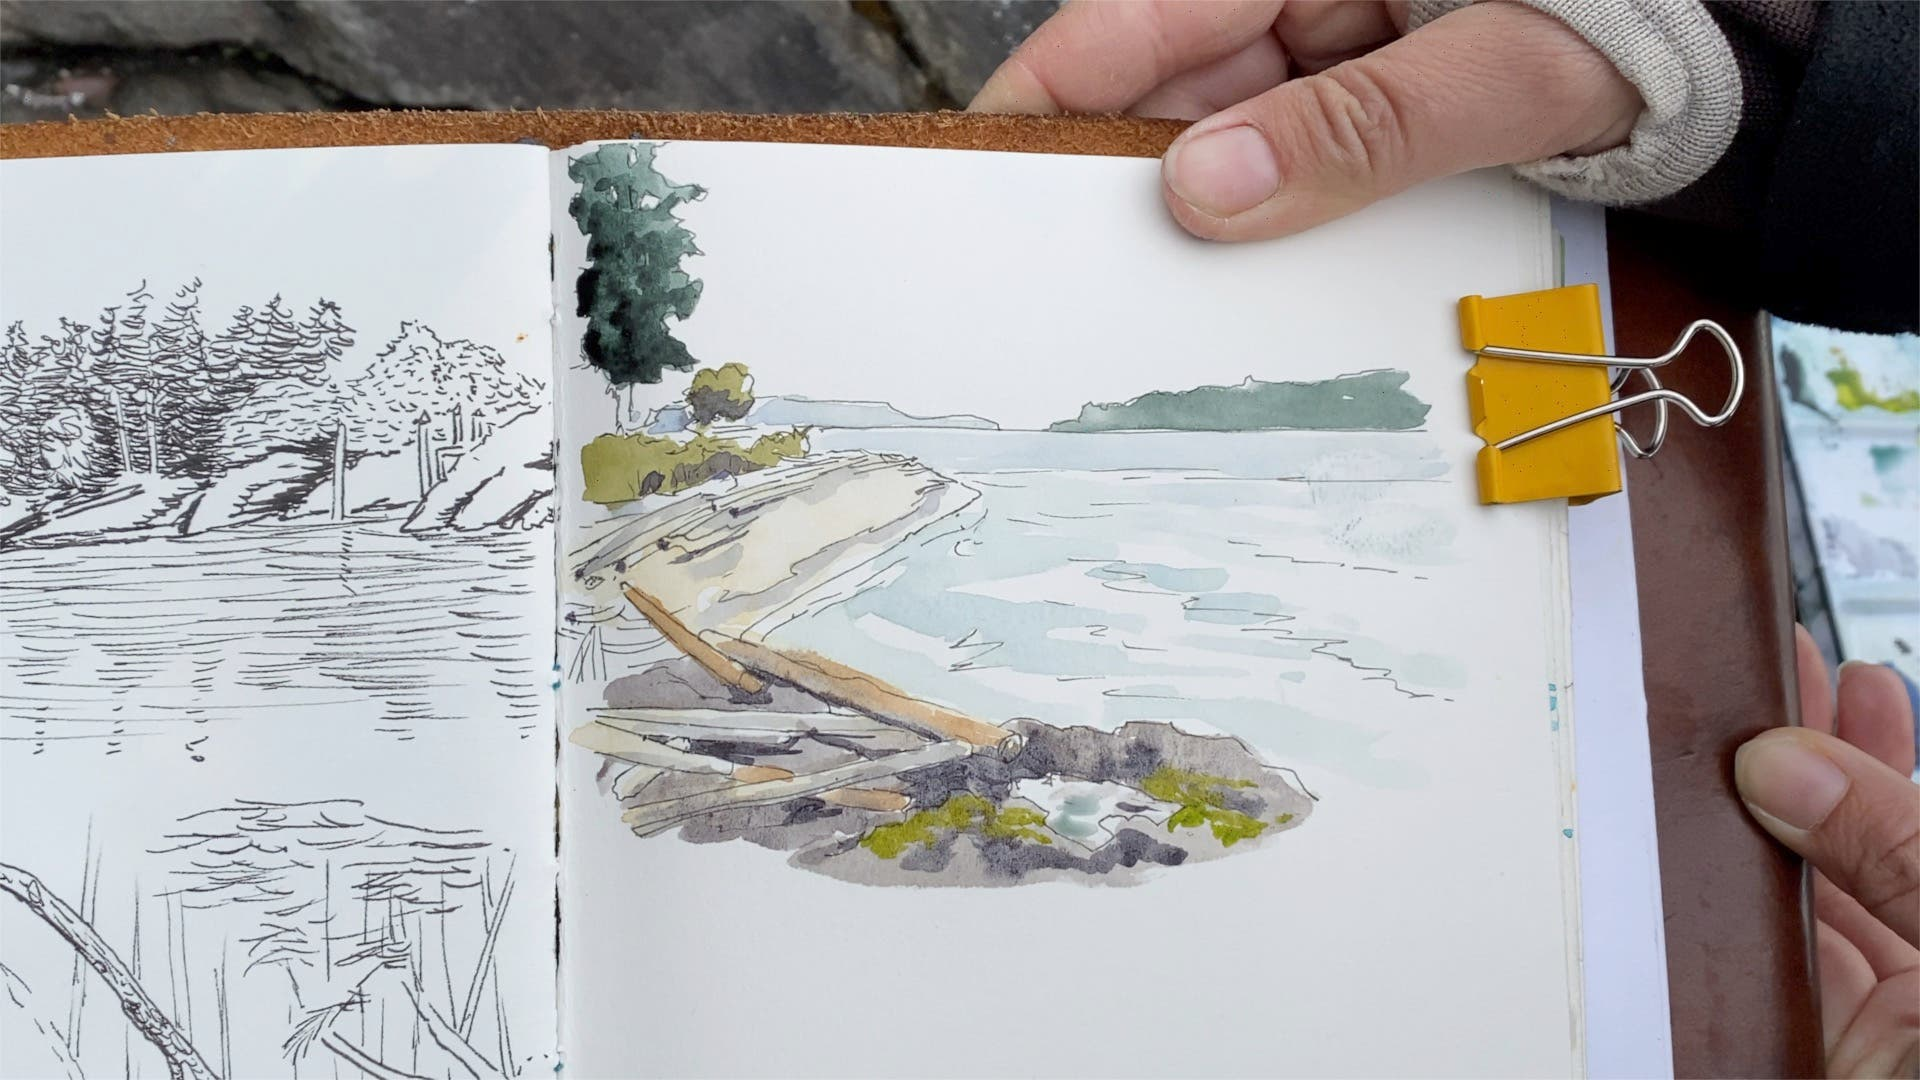 Sketch of beach with driftwood